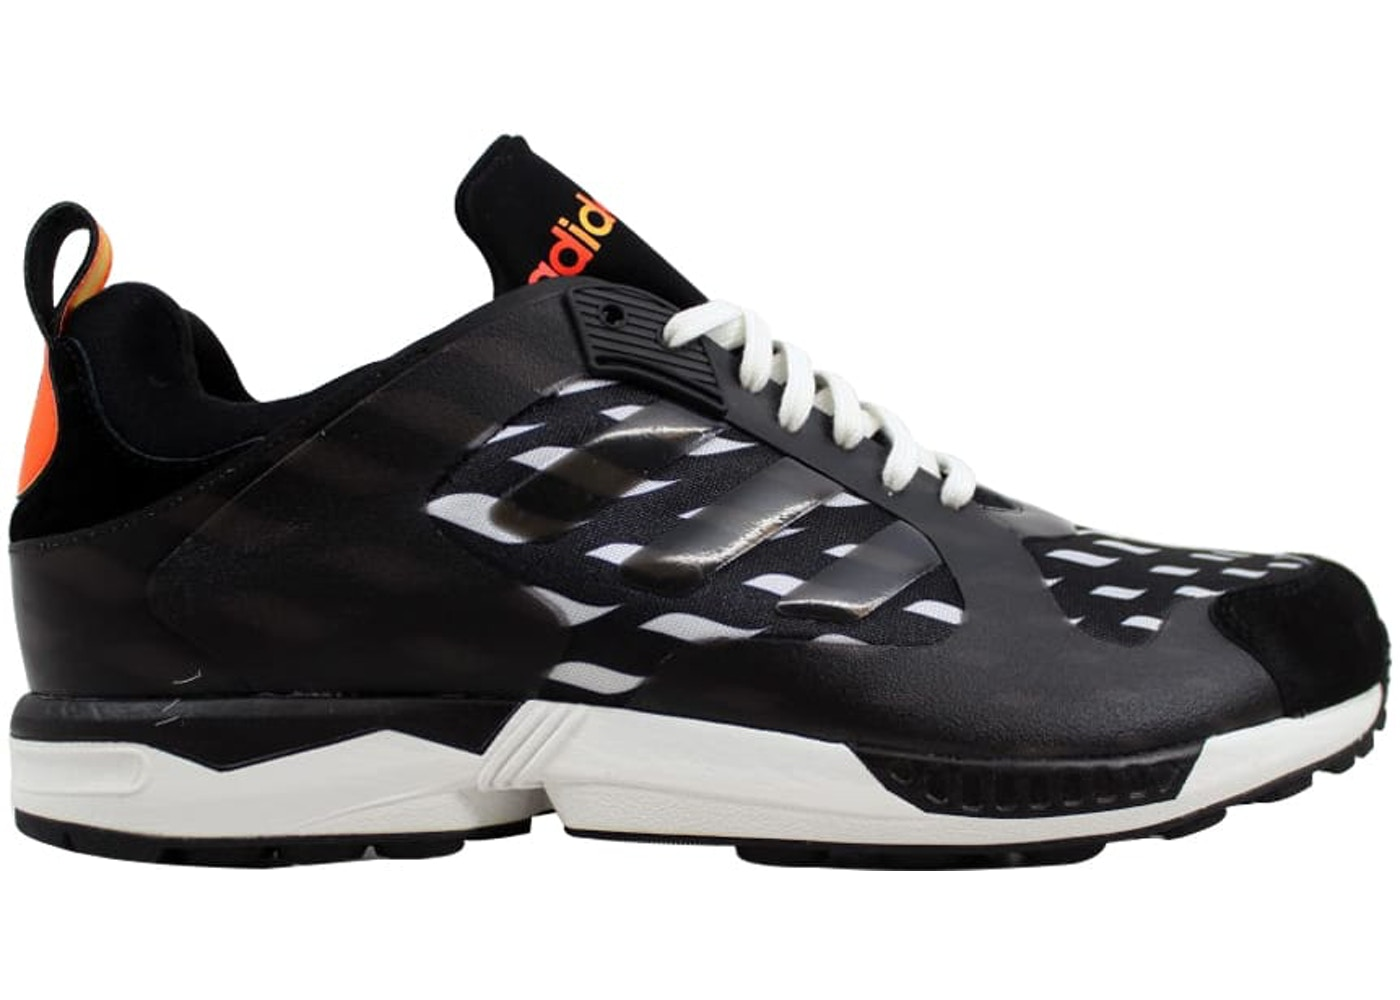 a051f4ef adidas ZX 5000 RSPN WC Battle Pack - M21782